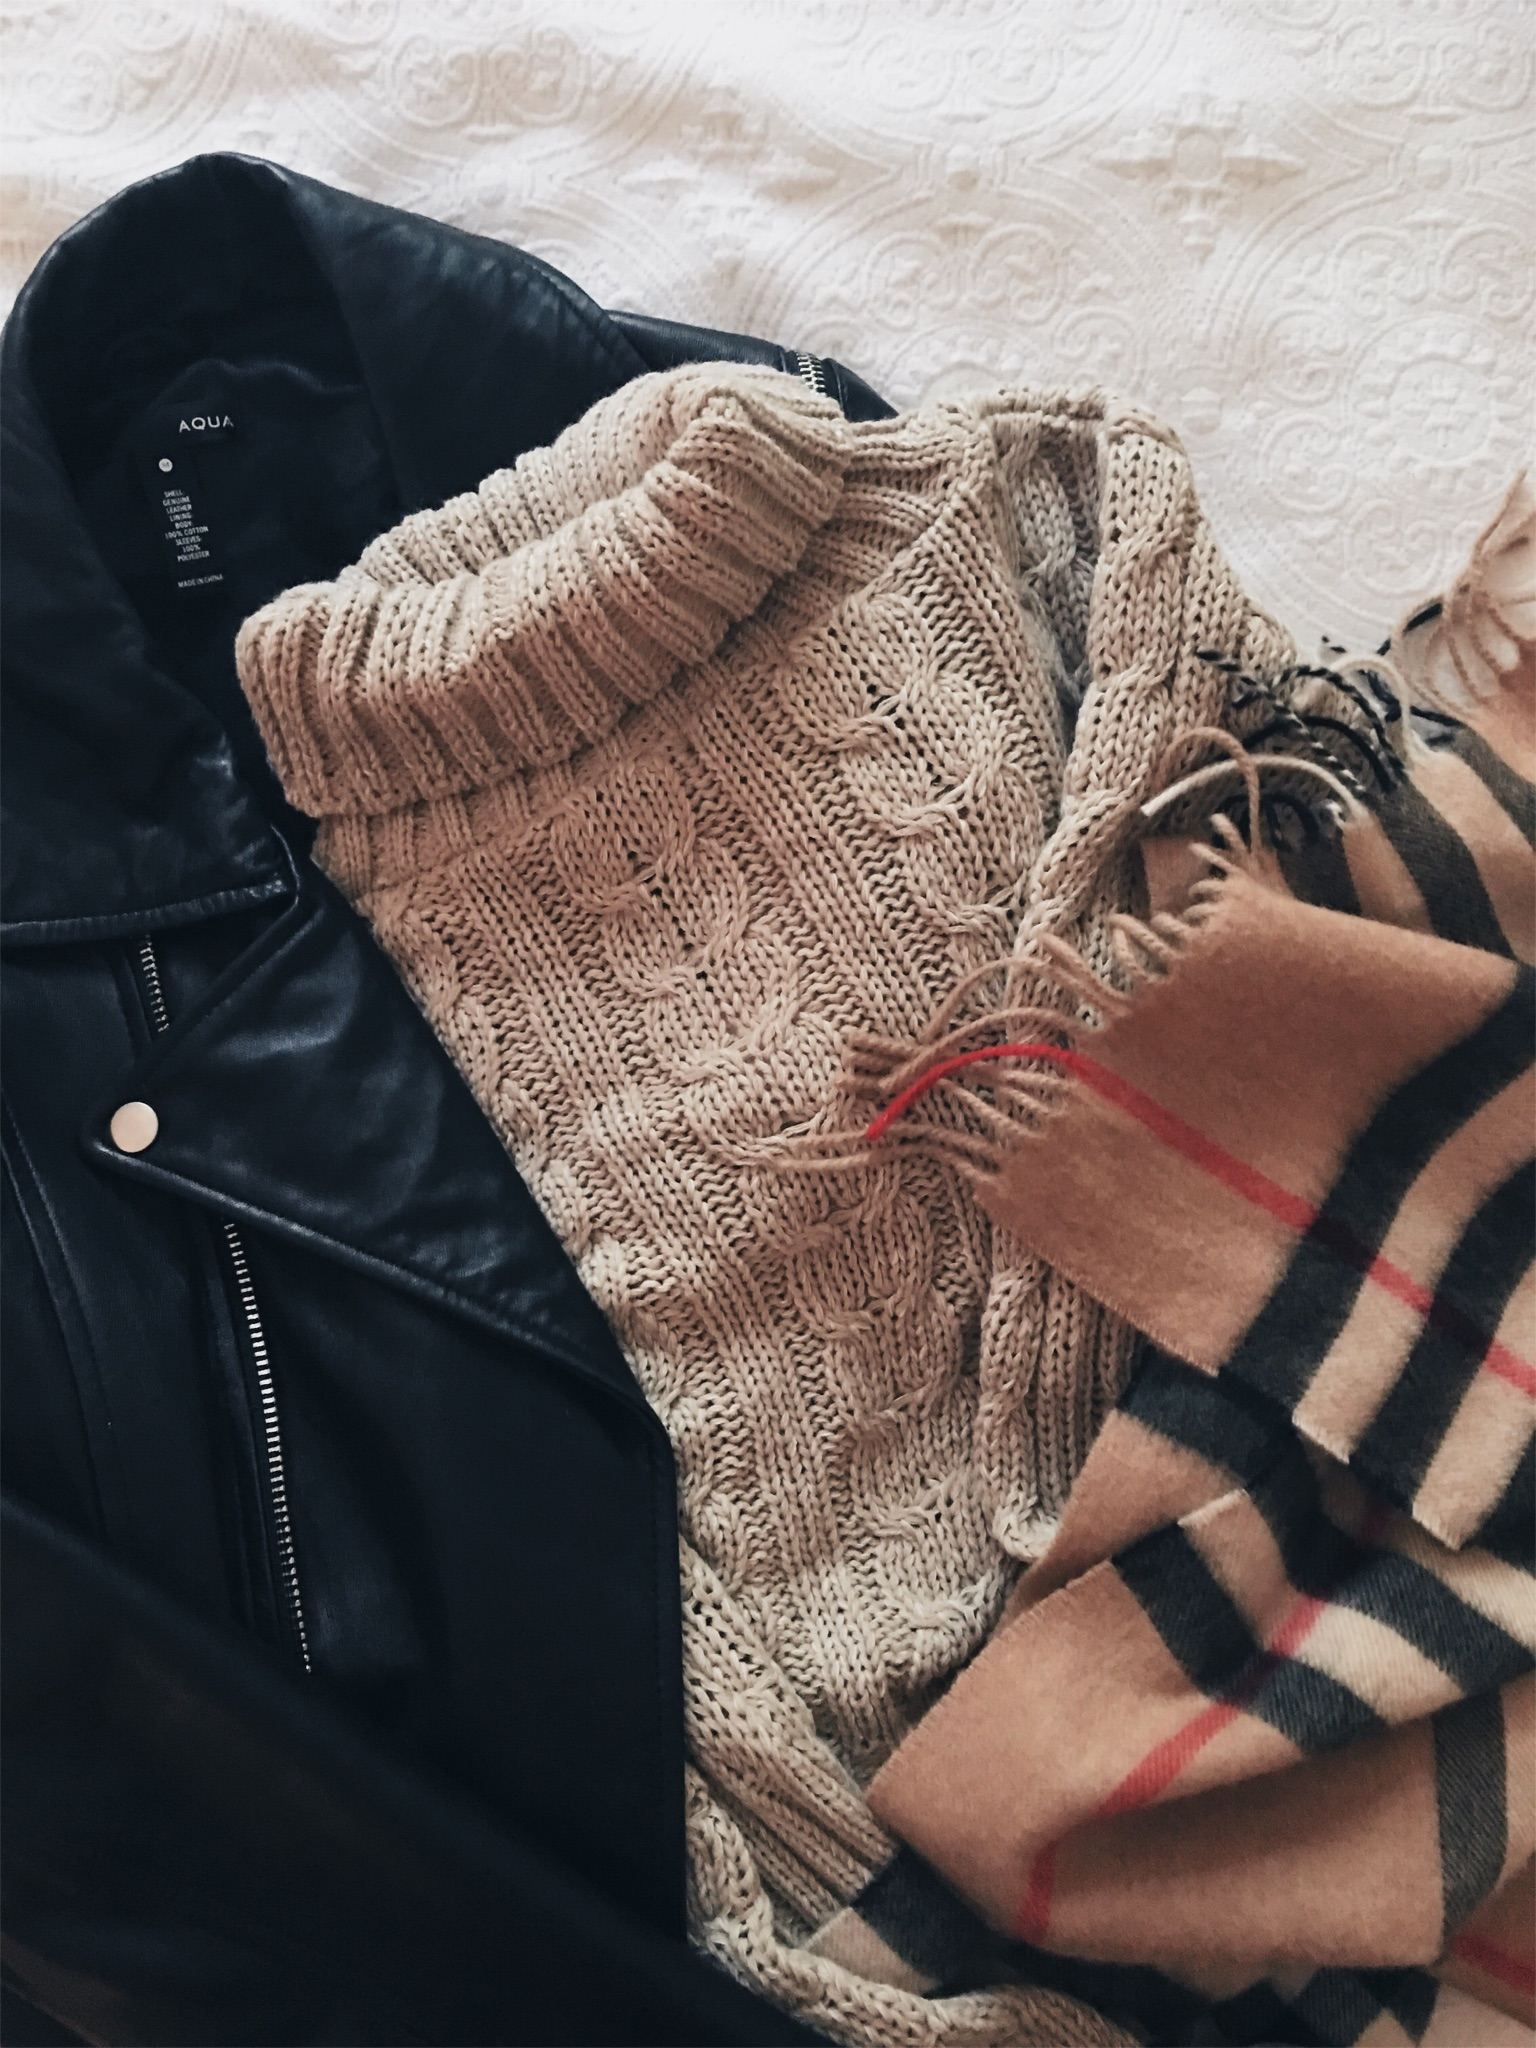 how to build a capsule wardrobe The Cozie